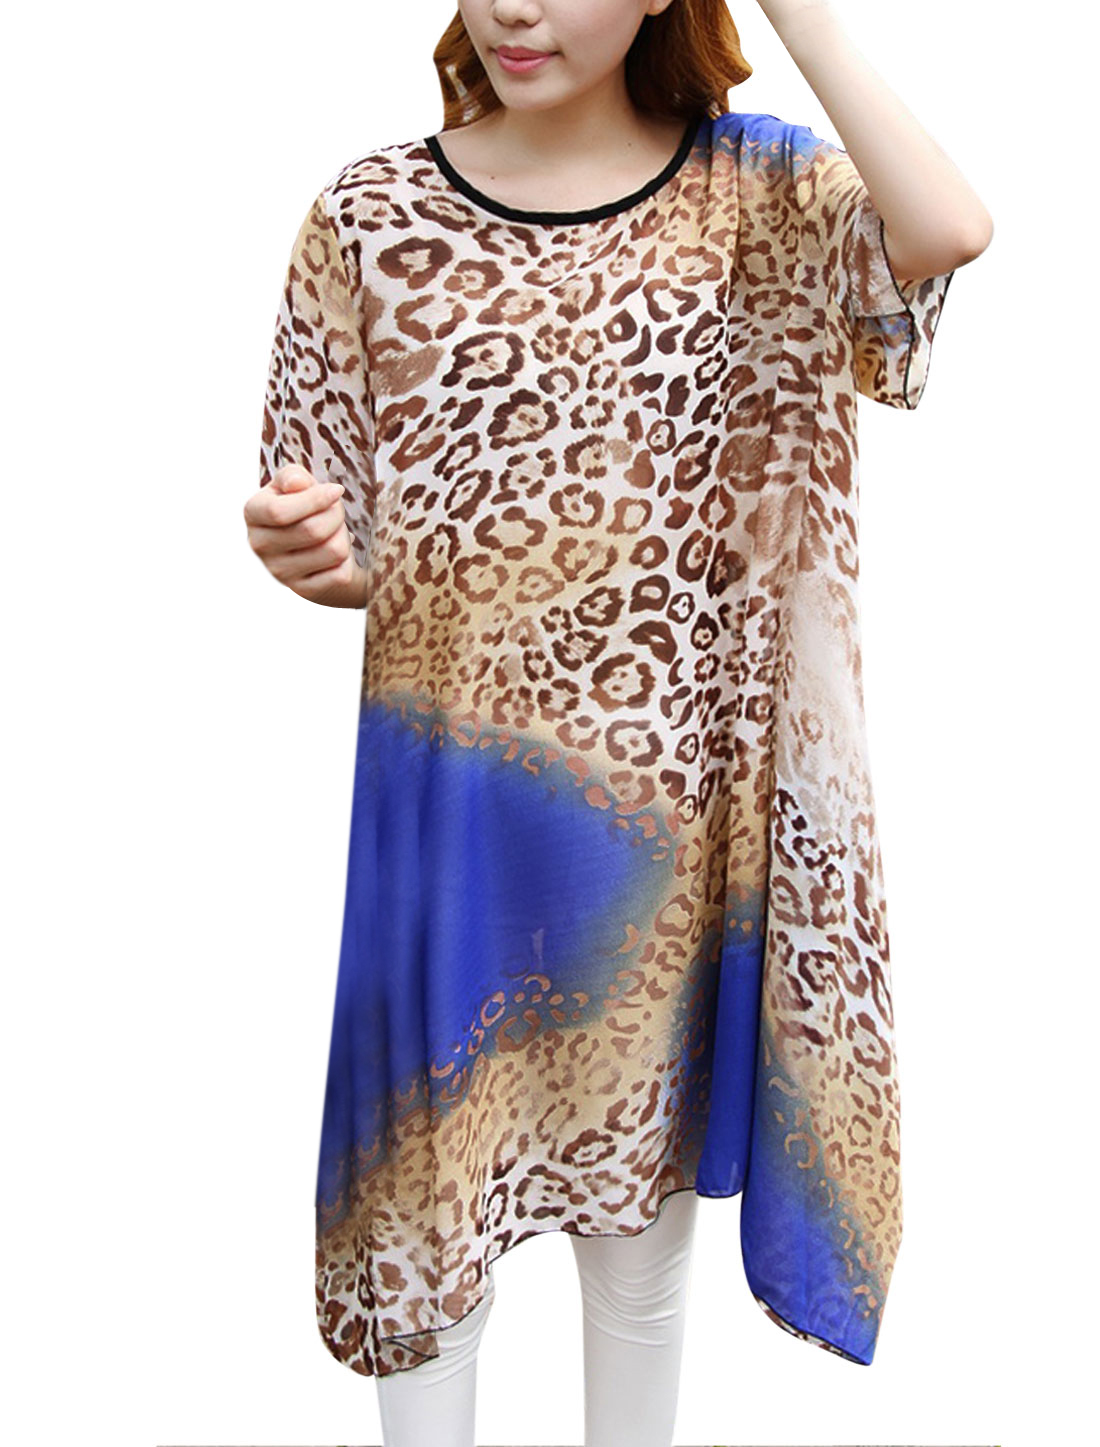 Lady Short Sleeve Leopard Prints Semi Sheer Loose Tunic Top Blue Brown S